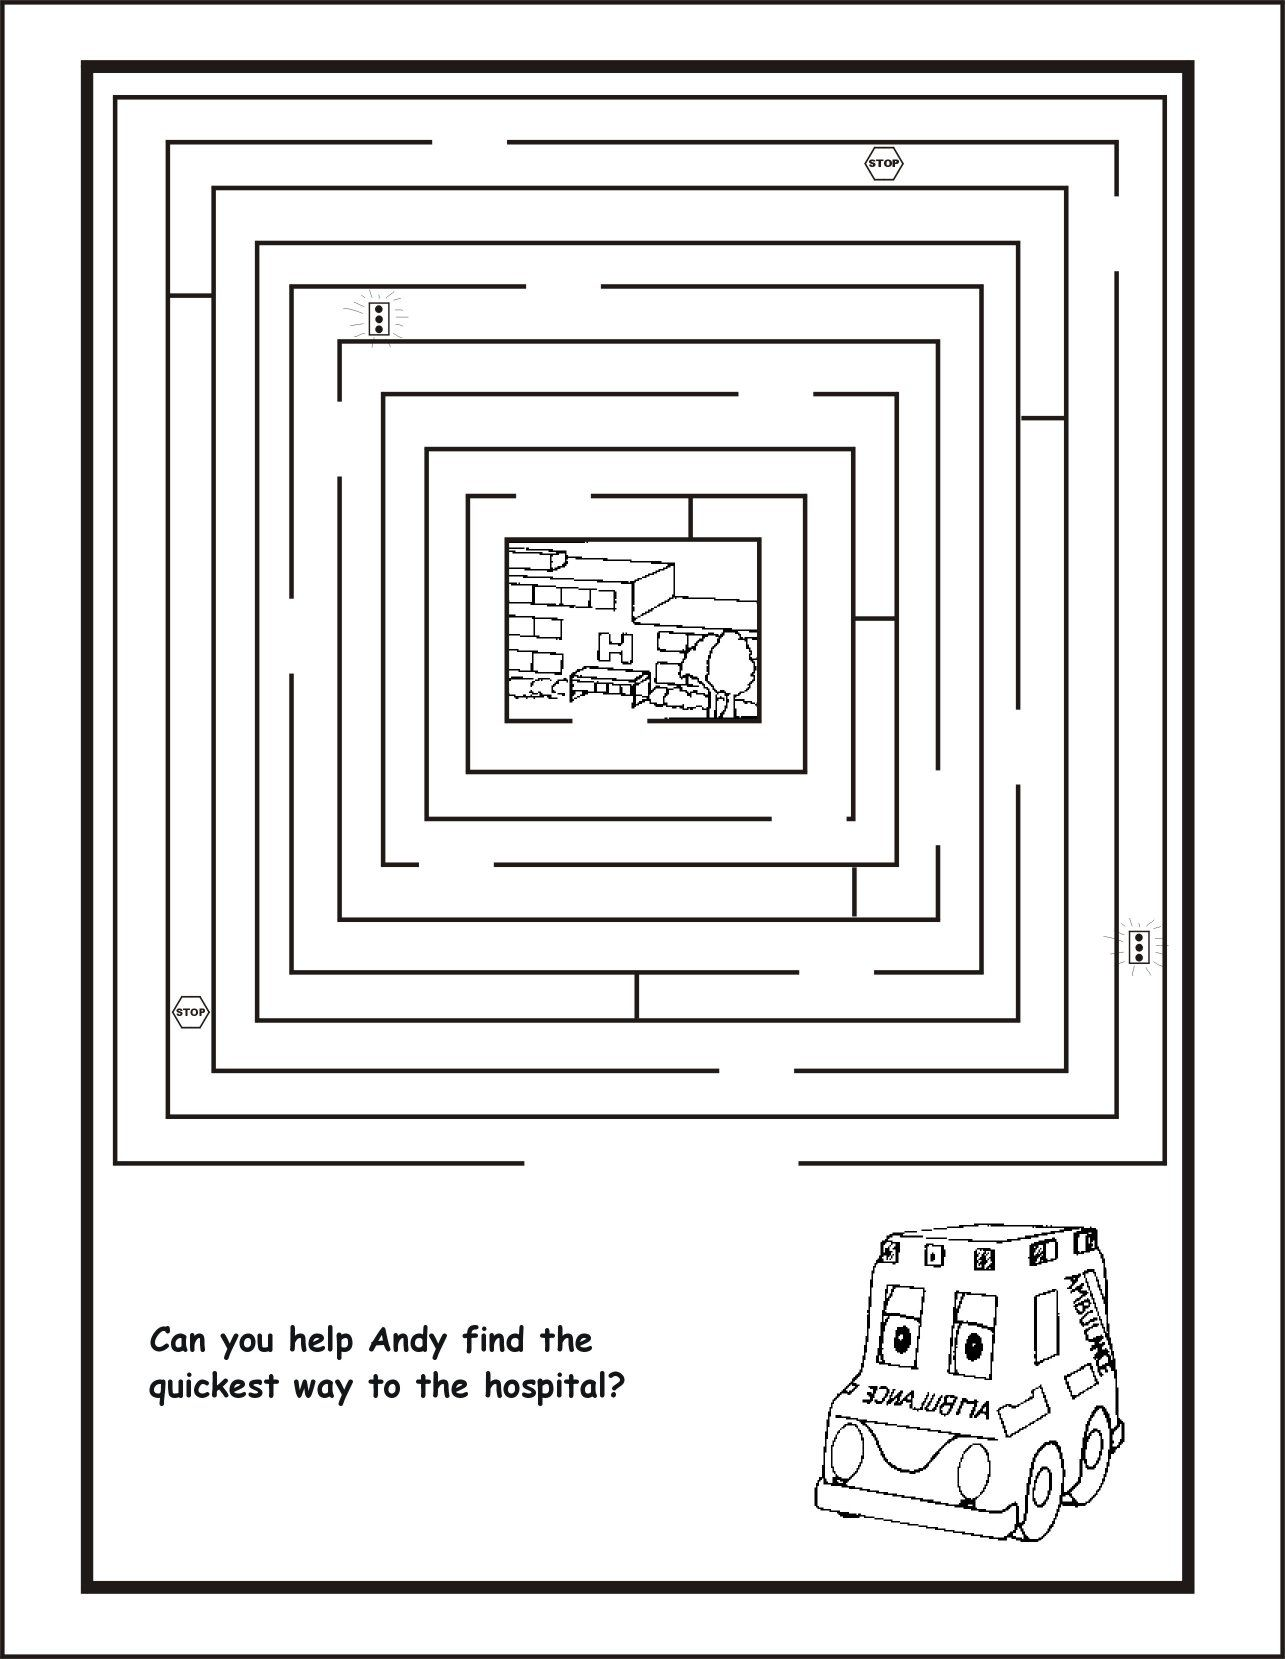 Train boxcar coloring pages - Ambulance Coloring Pages To View The Larger Version Click On Each Of The Images